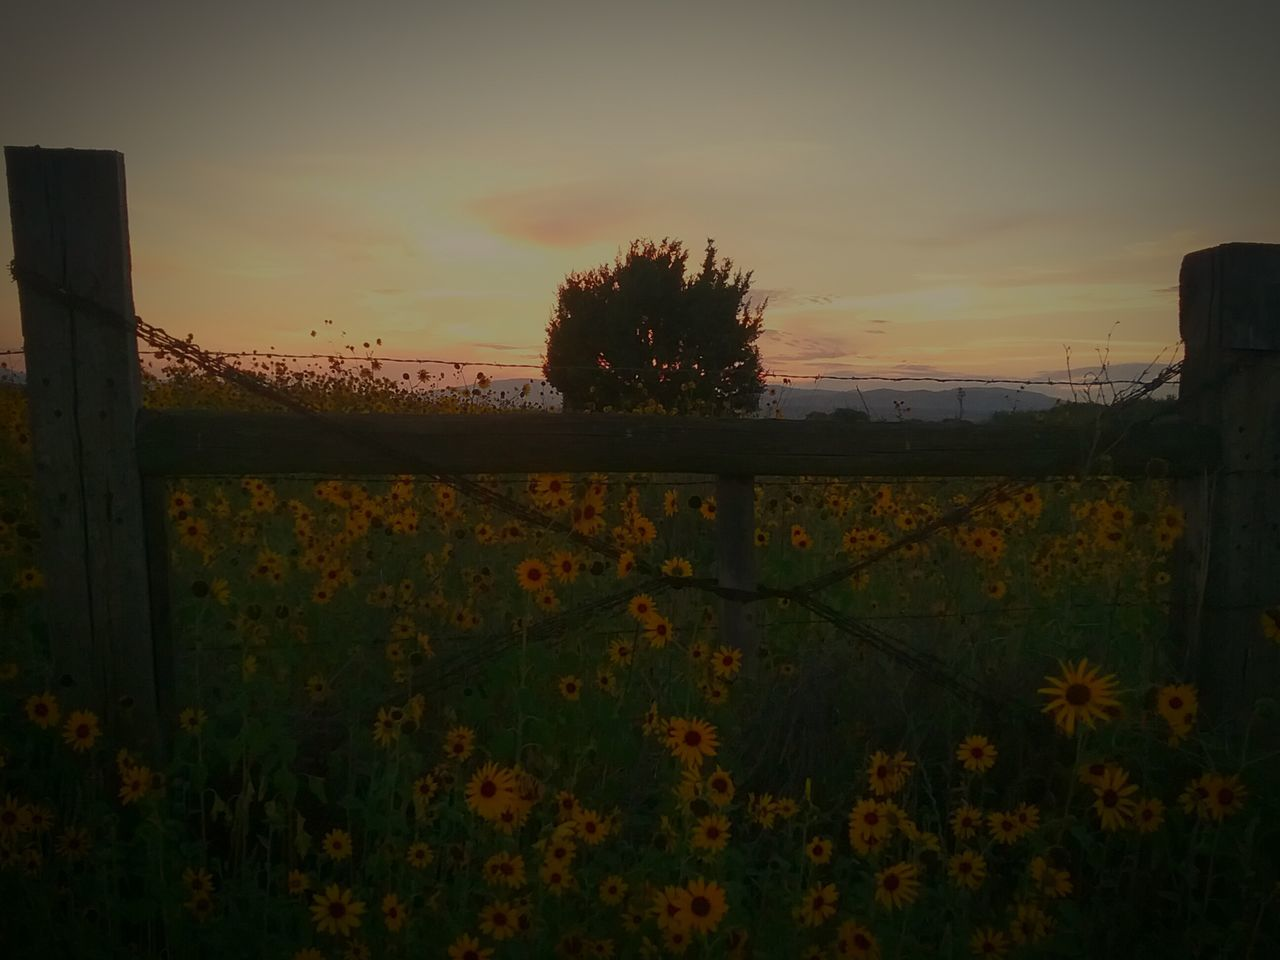 sunset, nature, flower, growth, beauty in nature, plant, tranquility, tranquil scene, sky, no people, outdoors, field, scenics, tree, landscape, grass, day